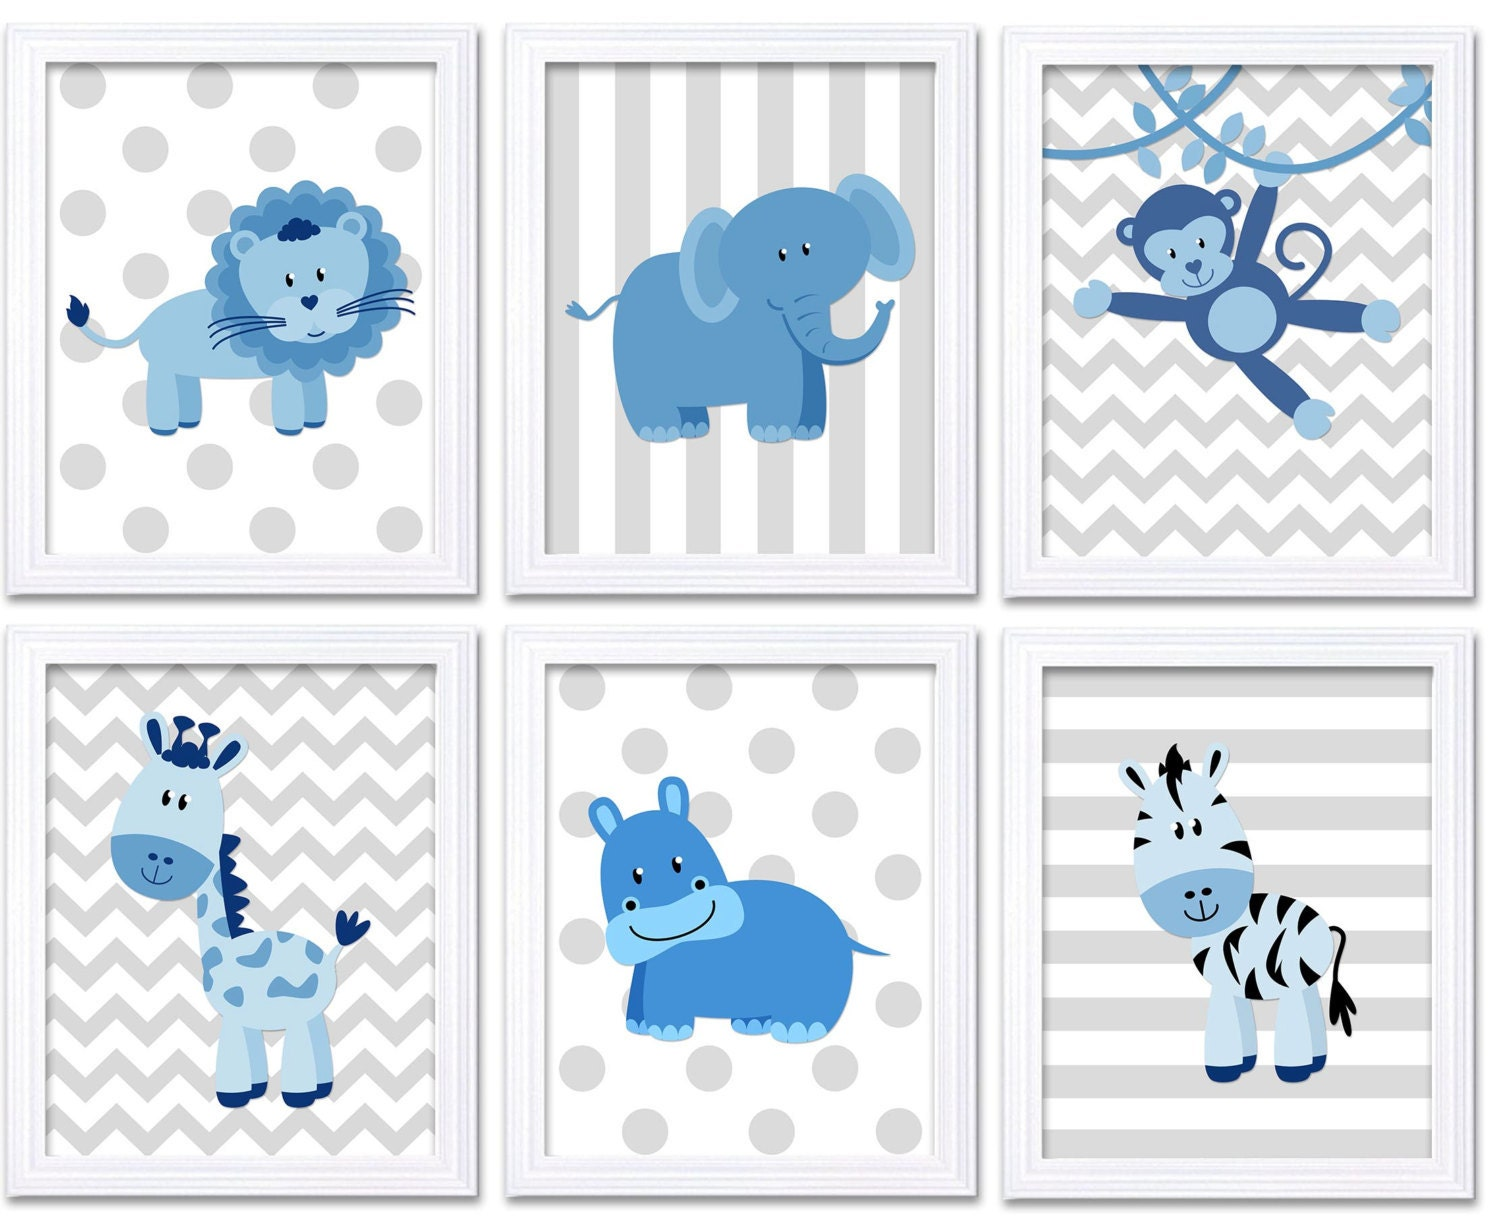 Blue Grey Africa Animals Jungle Nursery Art Set of 6 Prints Baby Wall Art Decor Kid Child Bedroom El